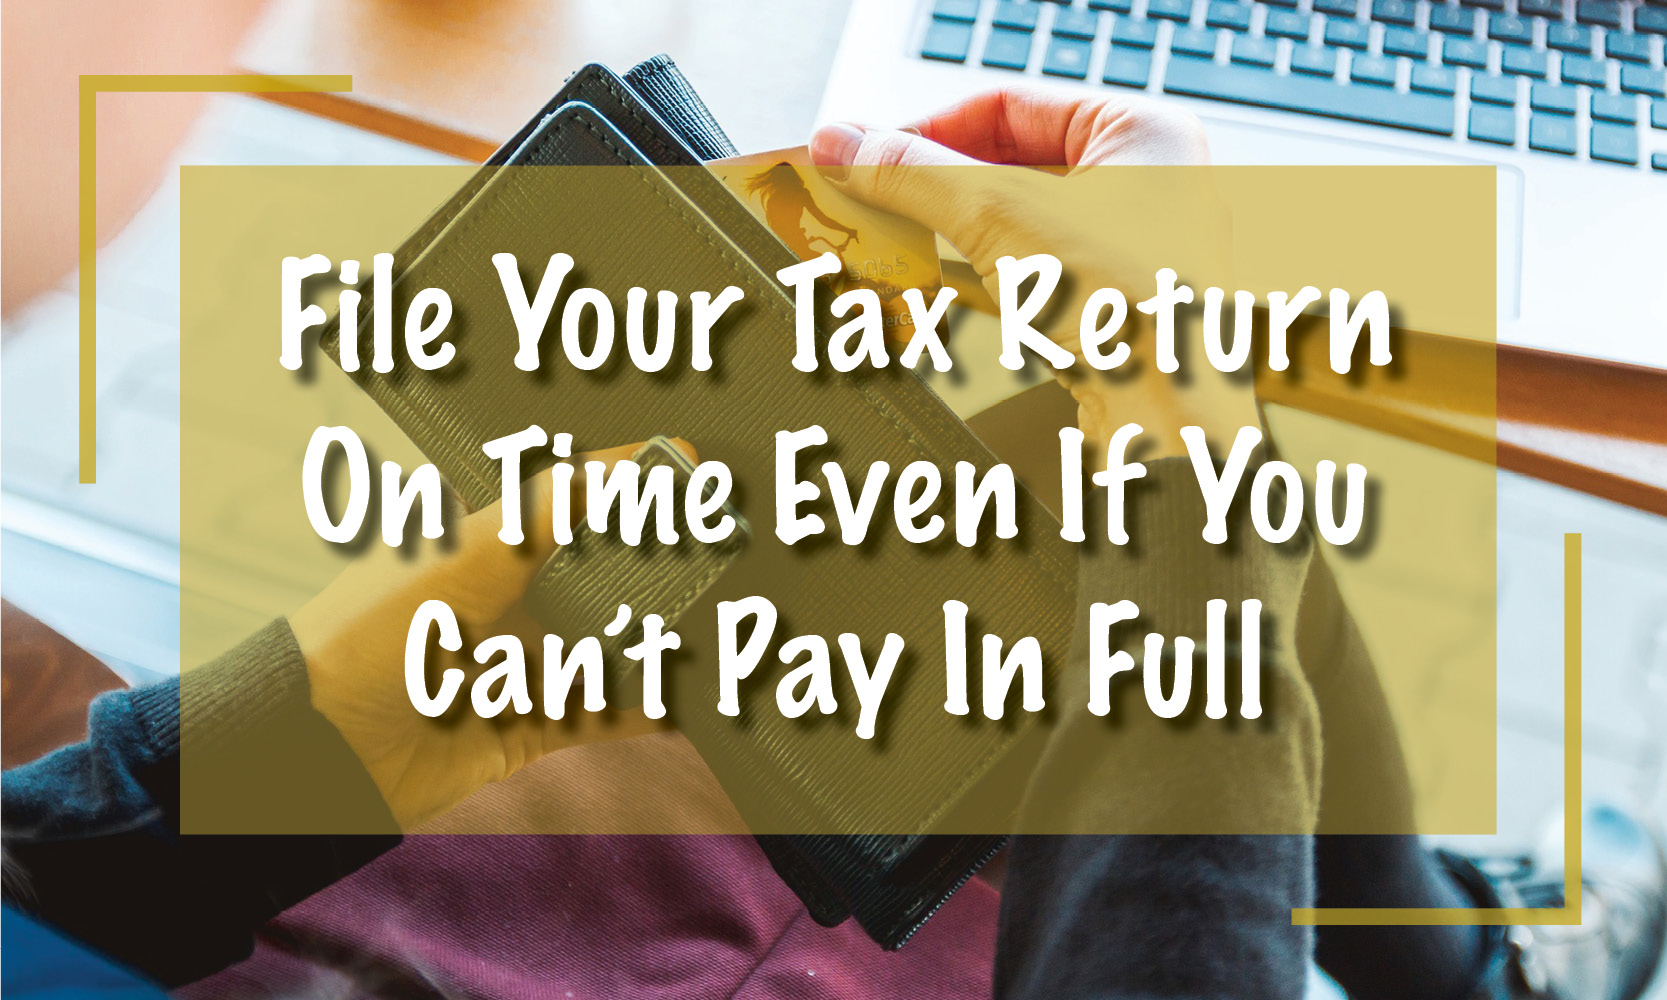 File Your Tax Return On Time Even If You Can't Pay in Full